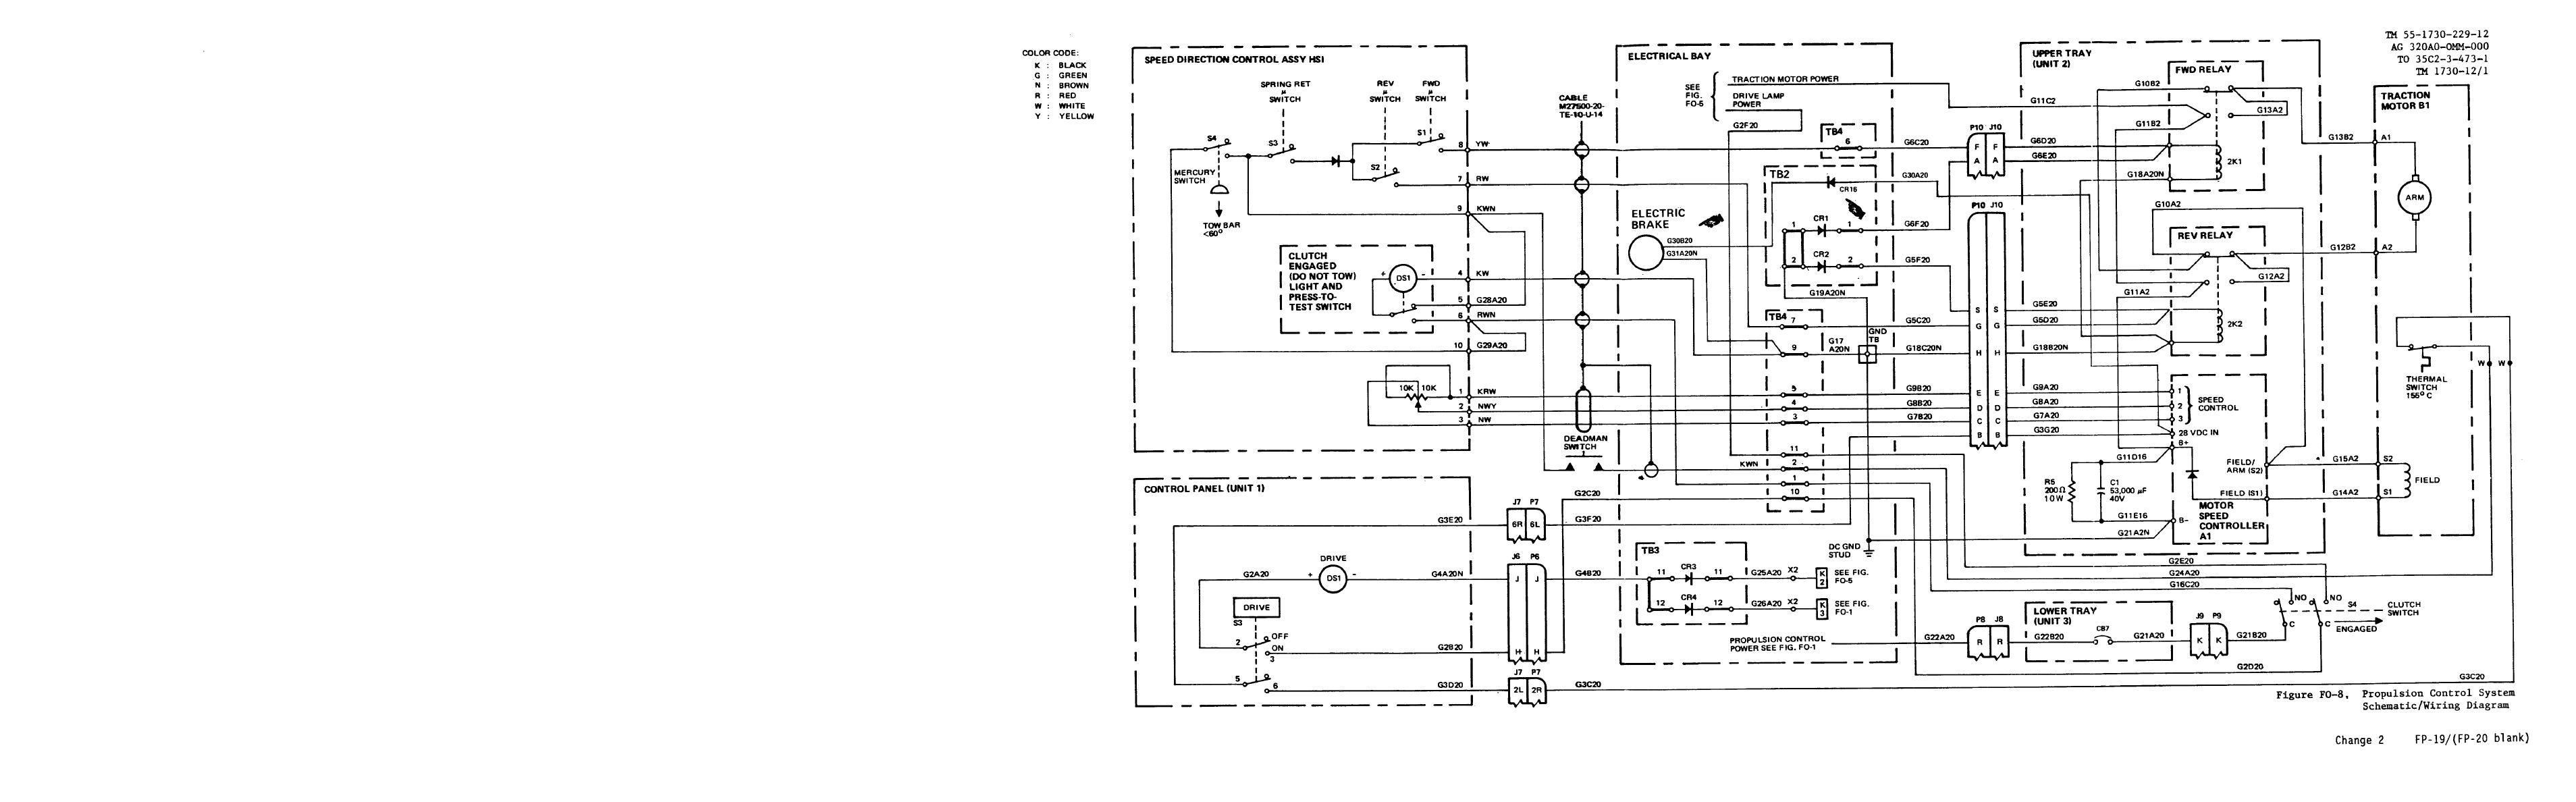 Schematic Control Diagram Wiring Posts Genie Diagrams Hydraulic And Pneumatic Figure Fo 8 Propulsion System Audio